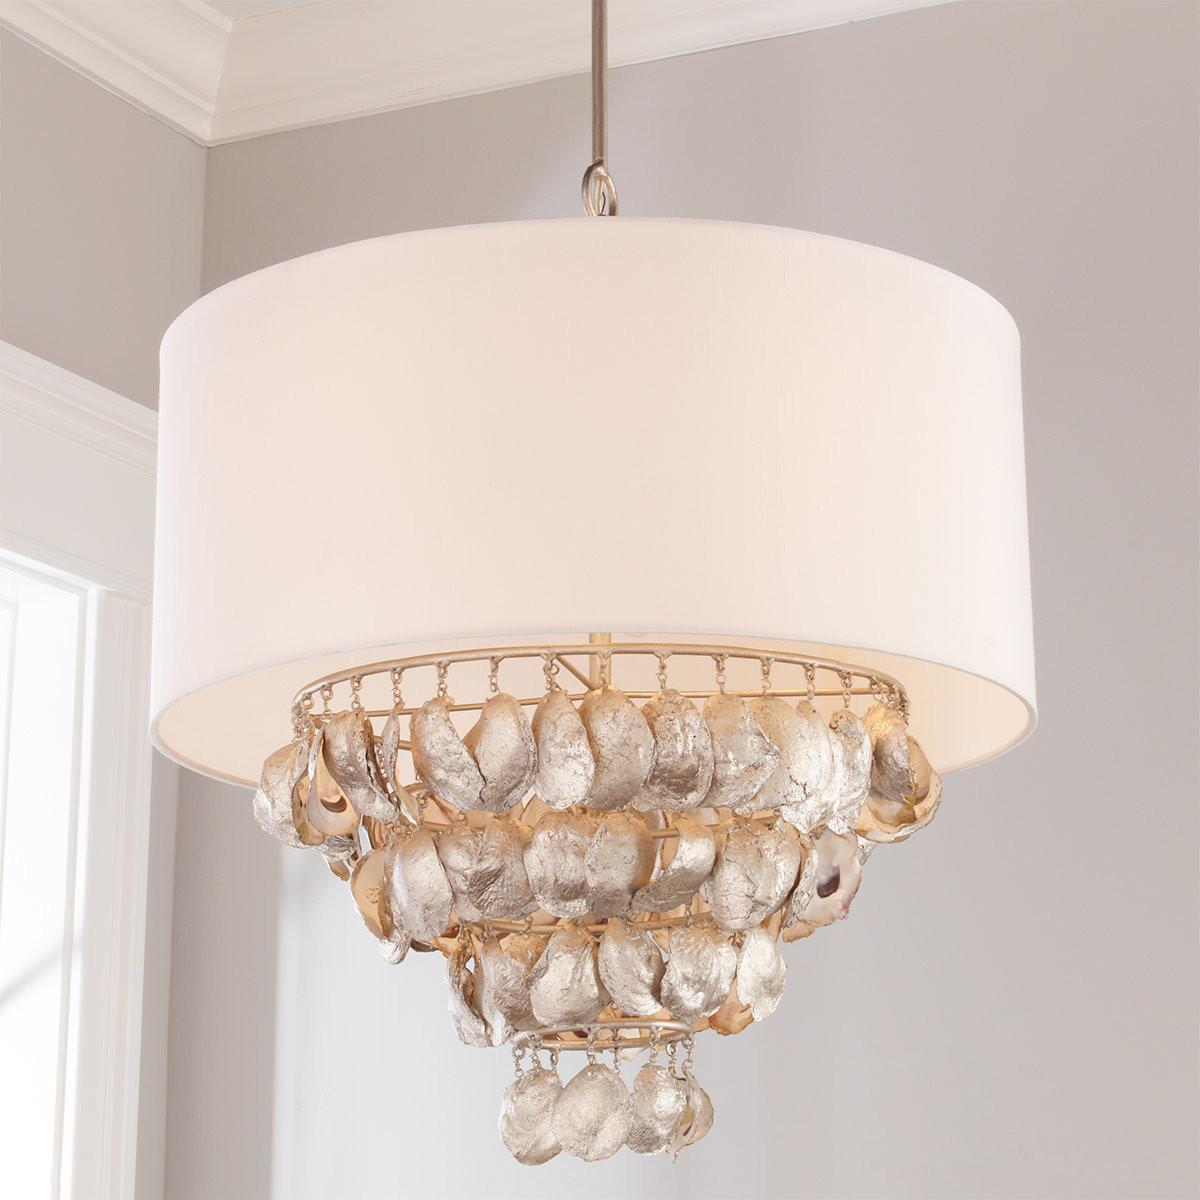 Oyster Shell Chandelier Shades Light